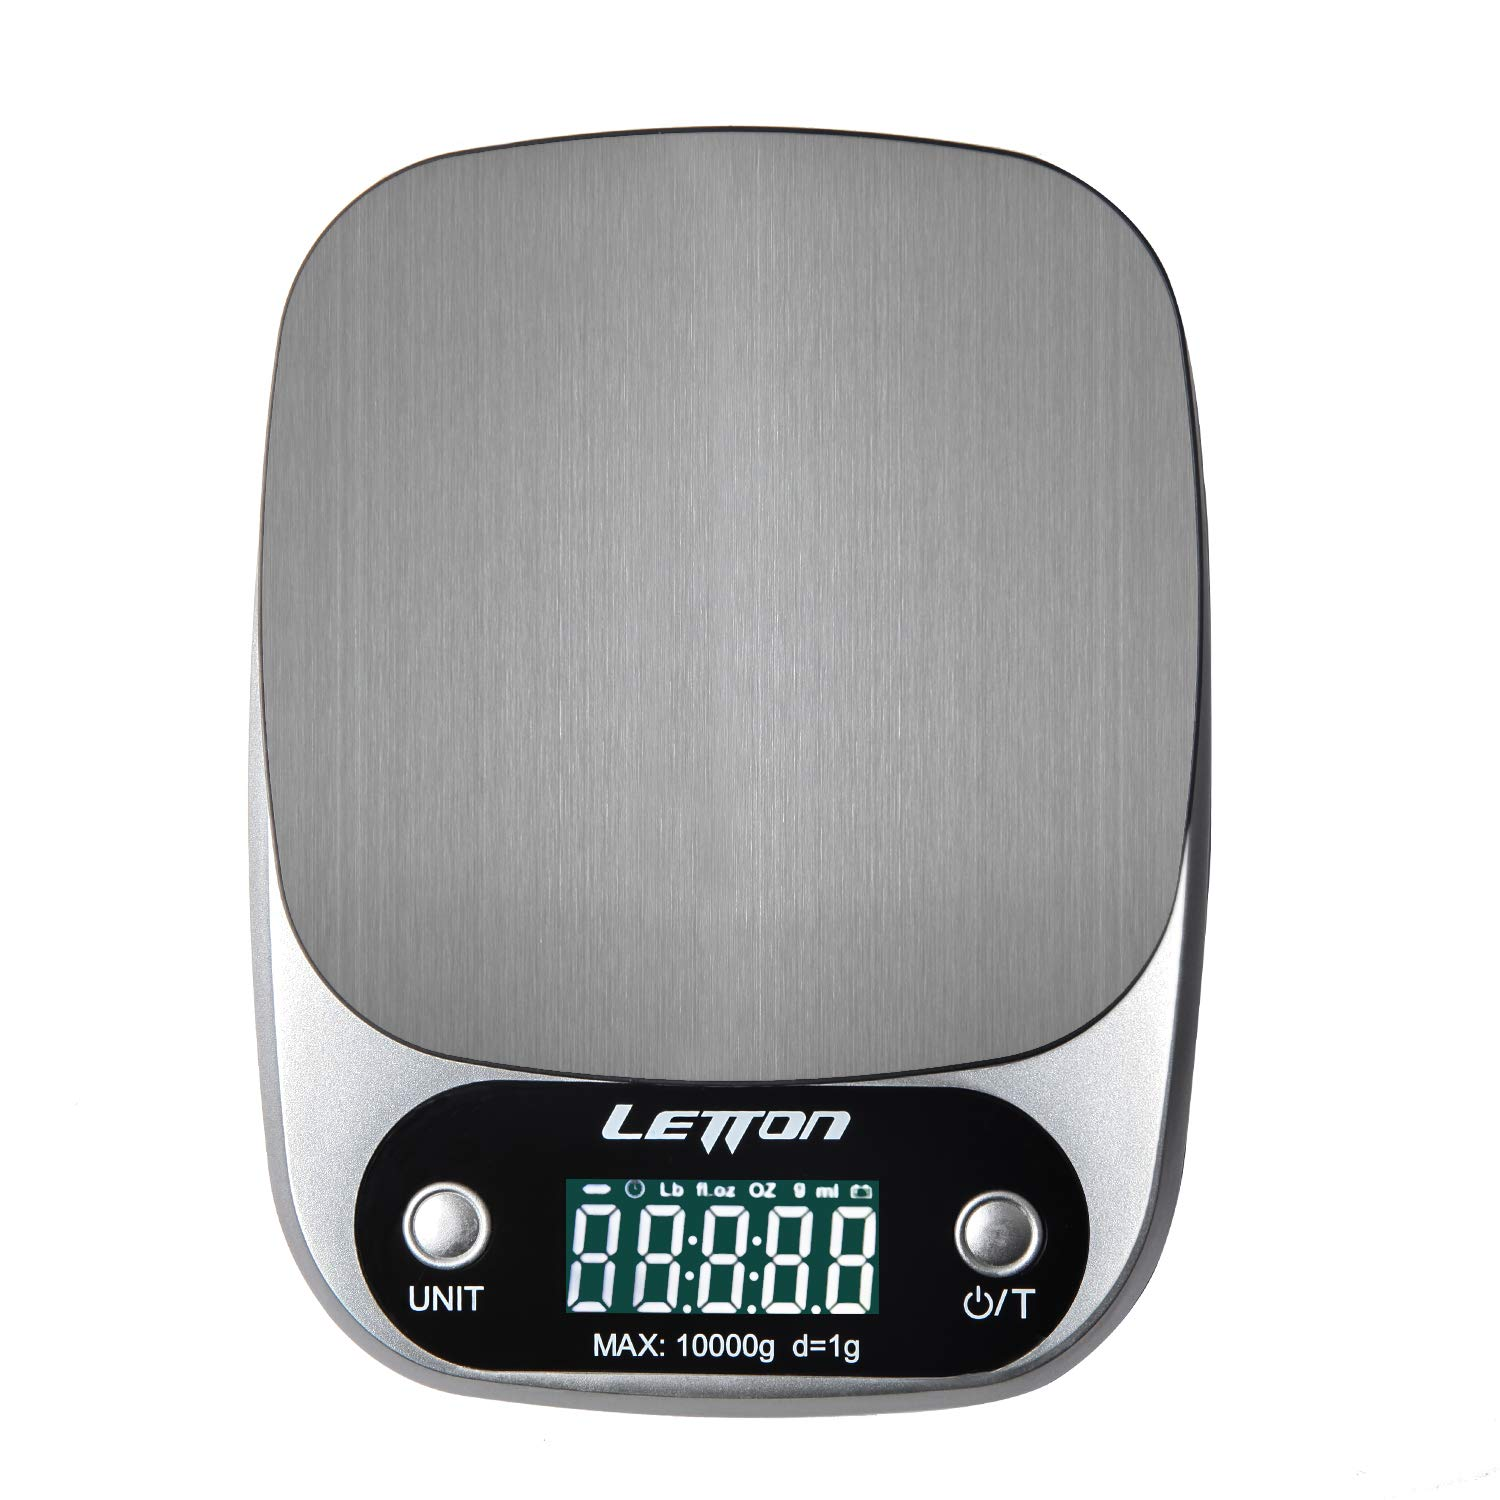 LETTON Digital Kitchen Scale Multifunction Food Scale, 22 lb 10 kg Stainless Steel (Batteries Included Silver)